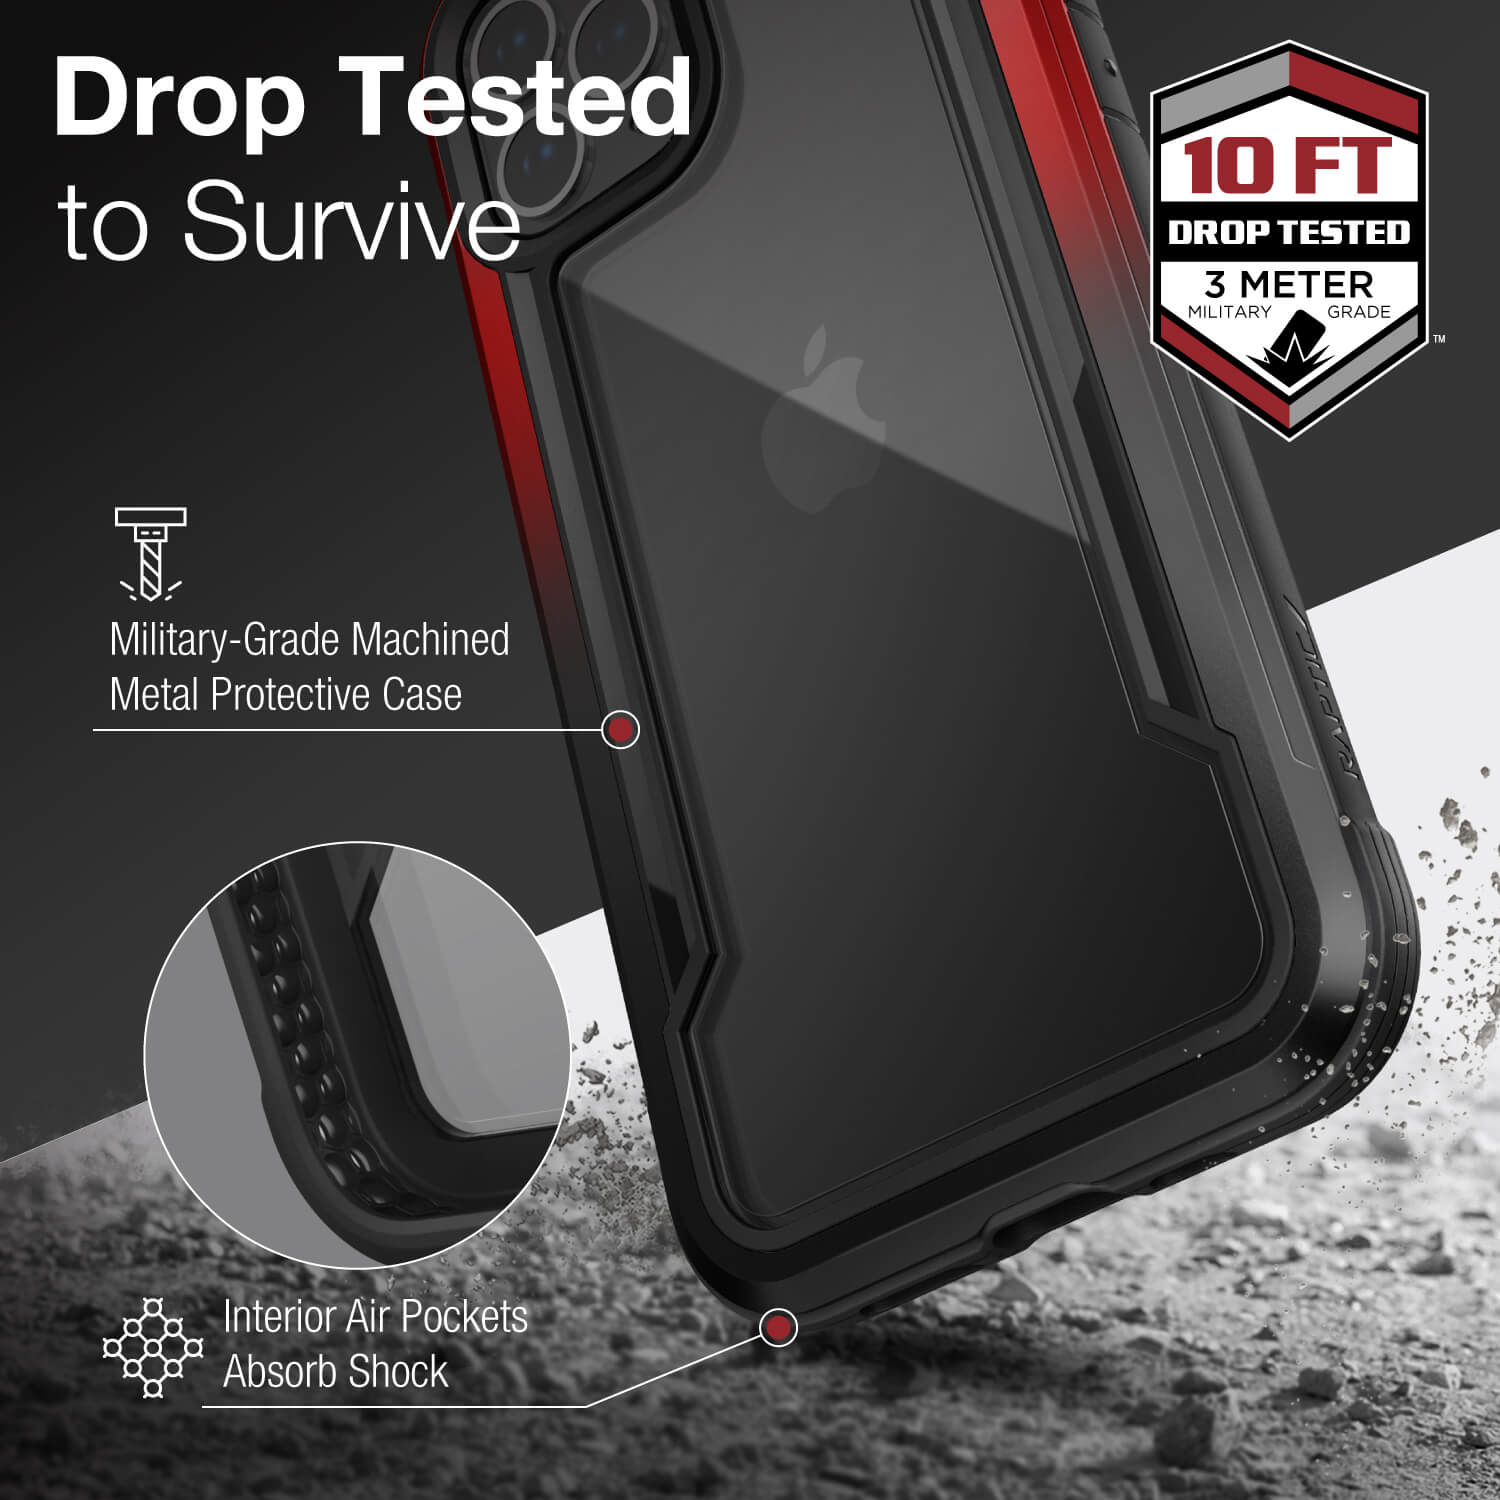 Infographic showing an iPhone 12 in a Black Red Gradient Raptic Shield Case with drop protection certification up to three metres